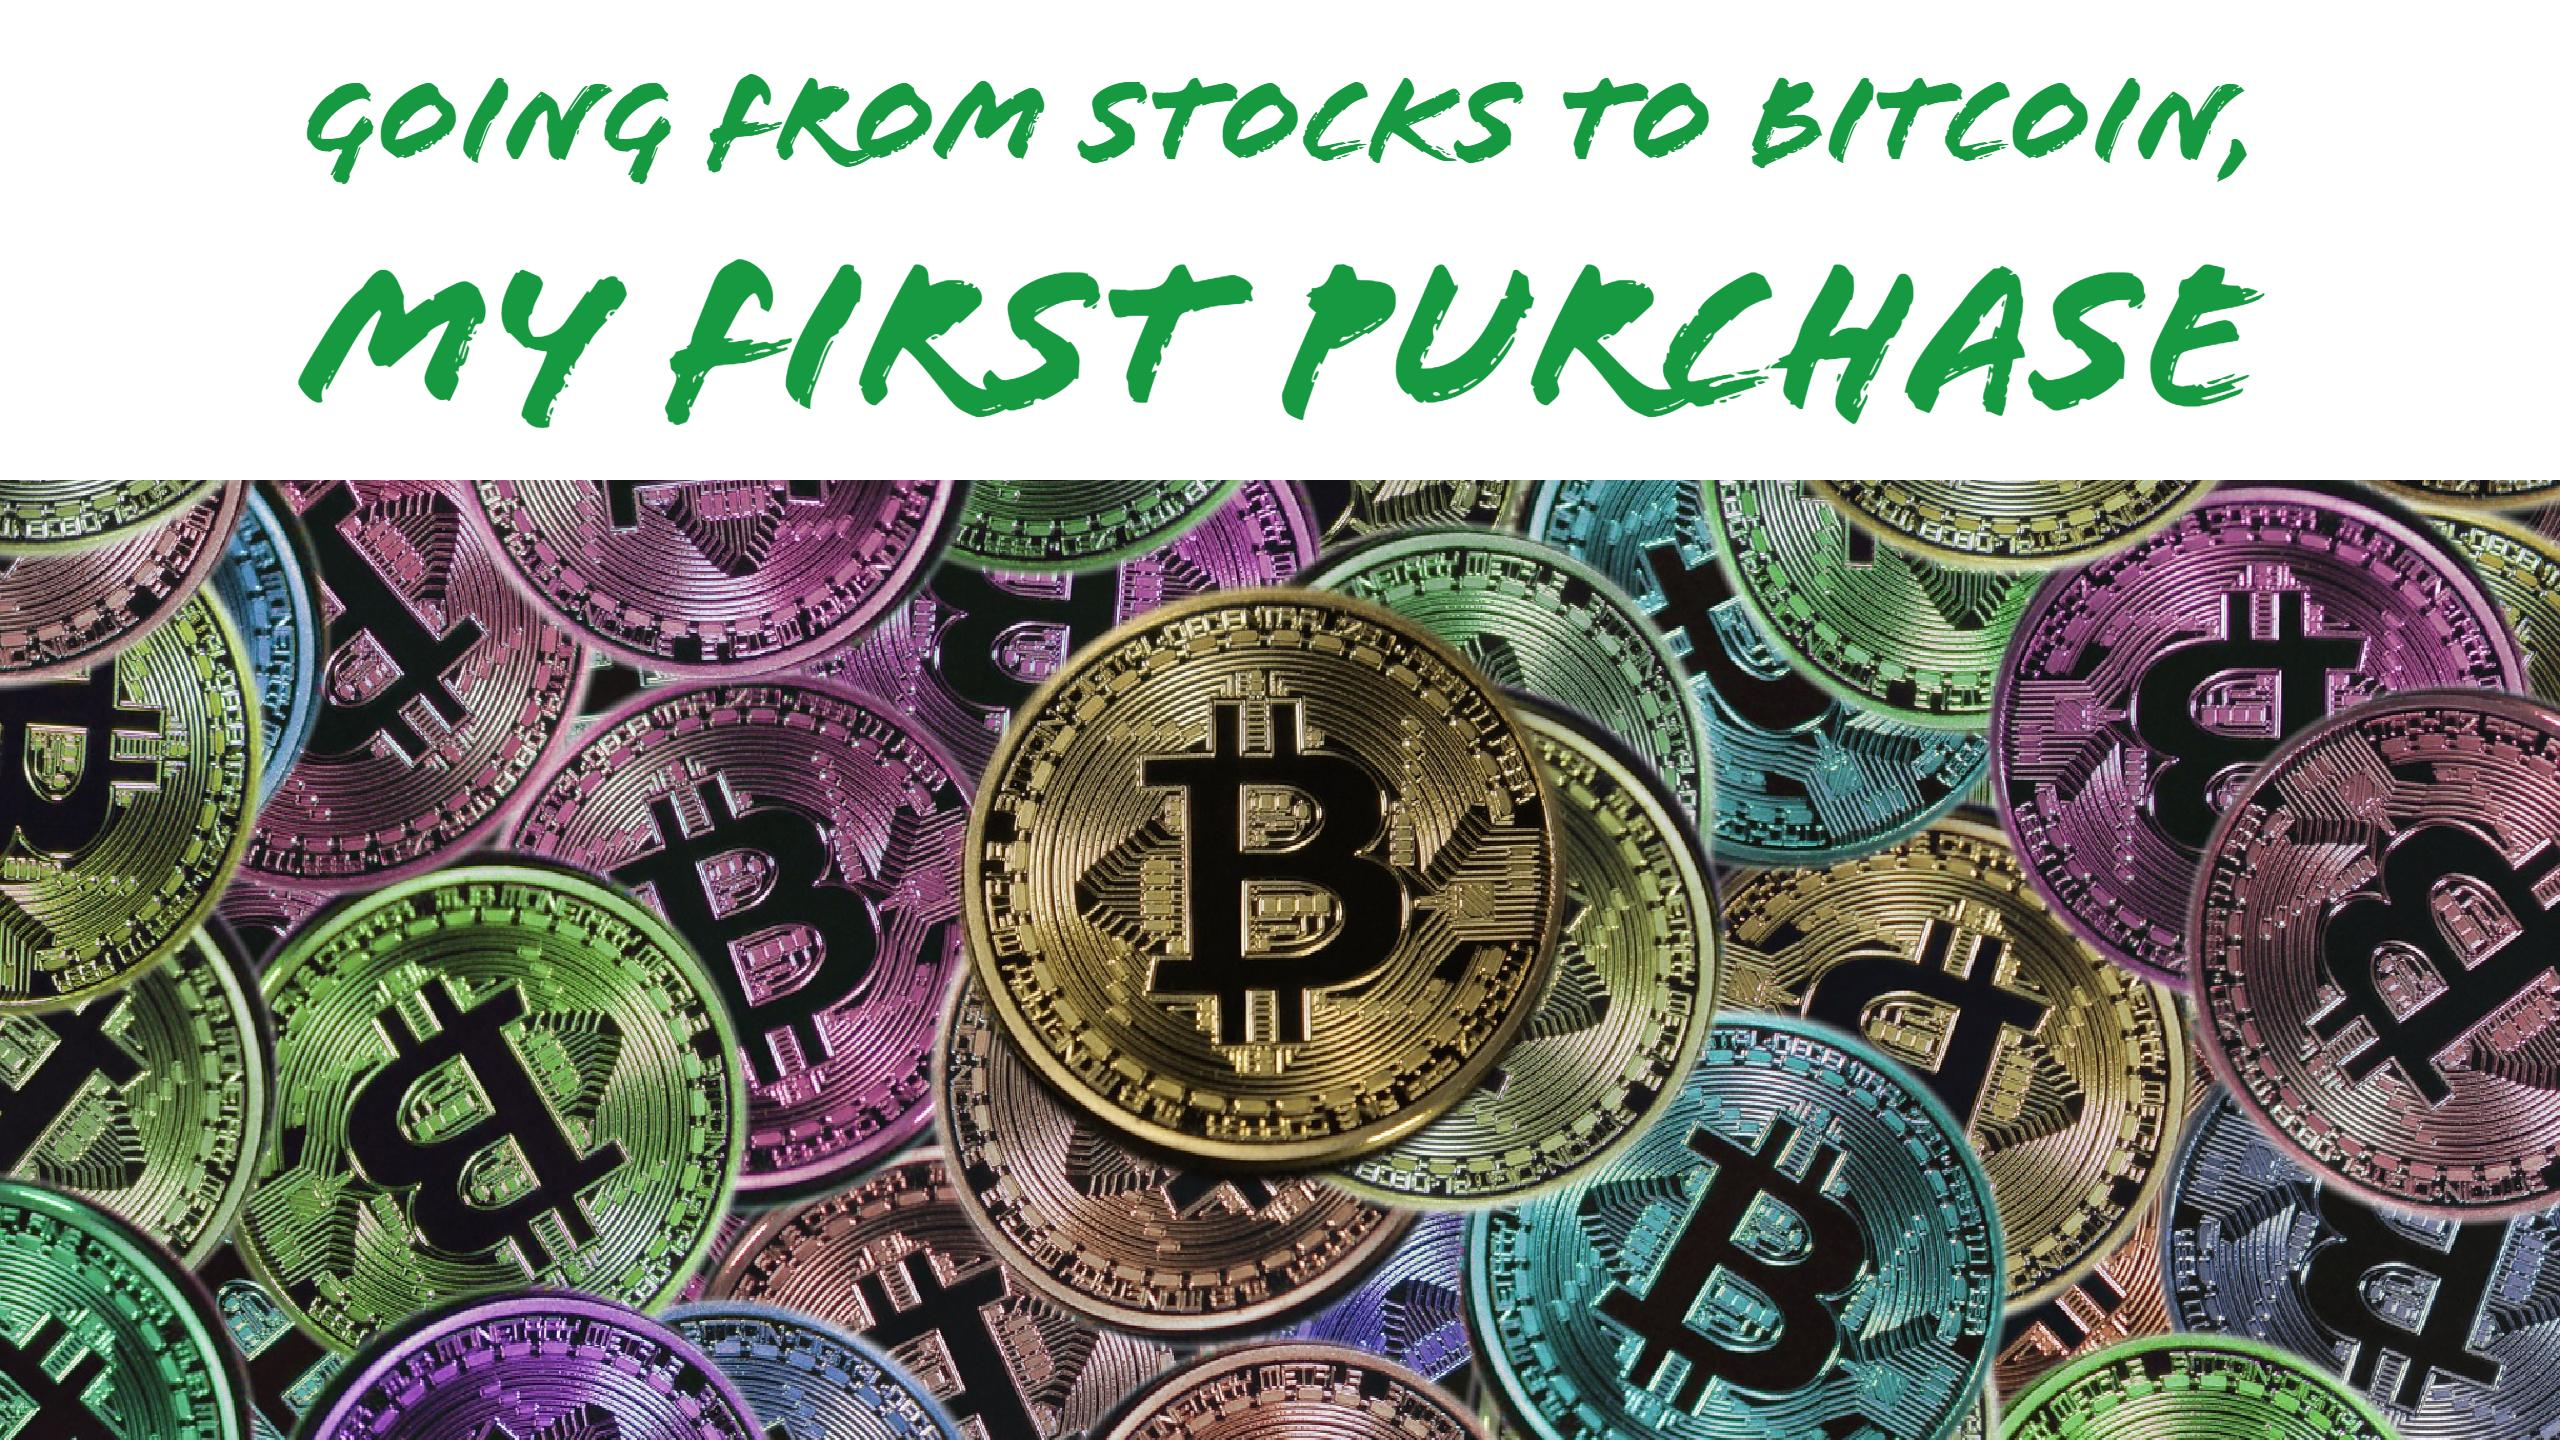 Image depicting buying cryptocurrency and buying bitcoin for article titled Going from Stocks to Cryptocurrency: Buying my First Bitcoin